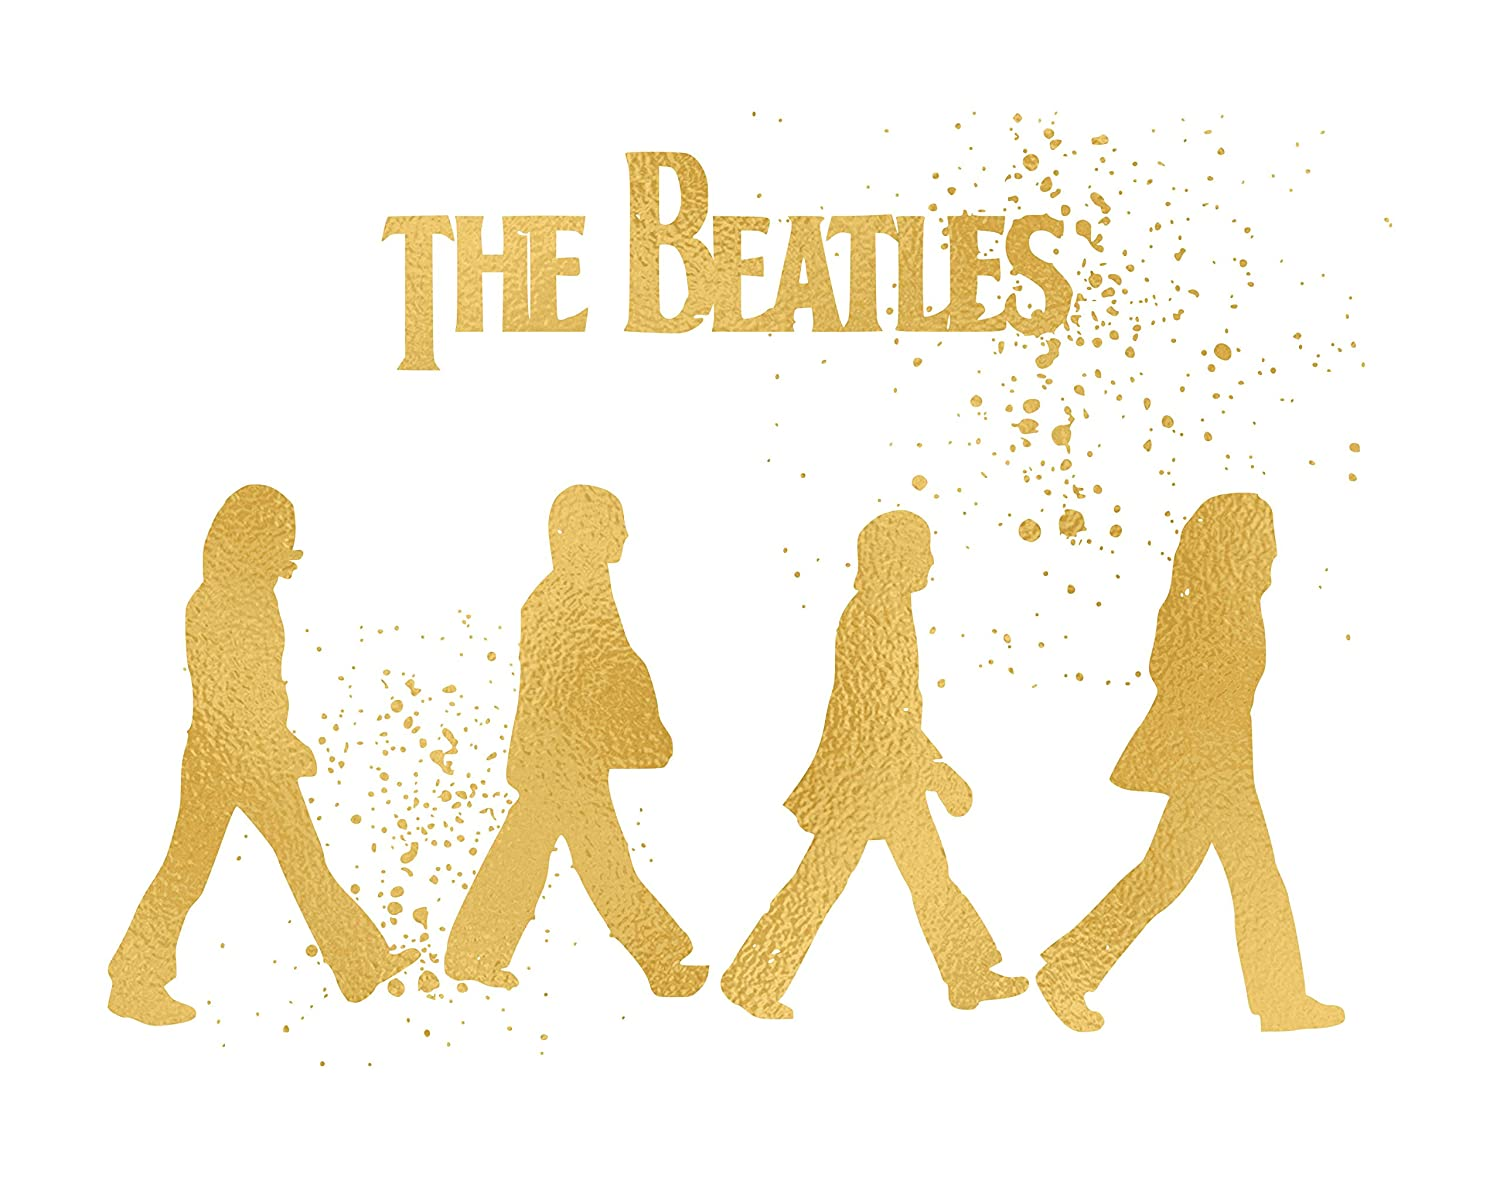 Amazon.com: Inspired by The Beatles - Poster Print Photo Quality ...